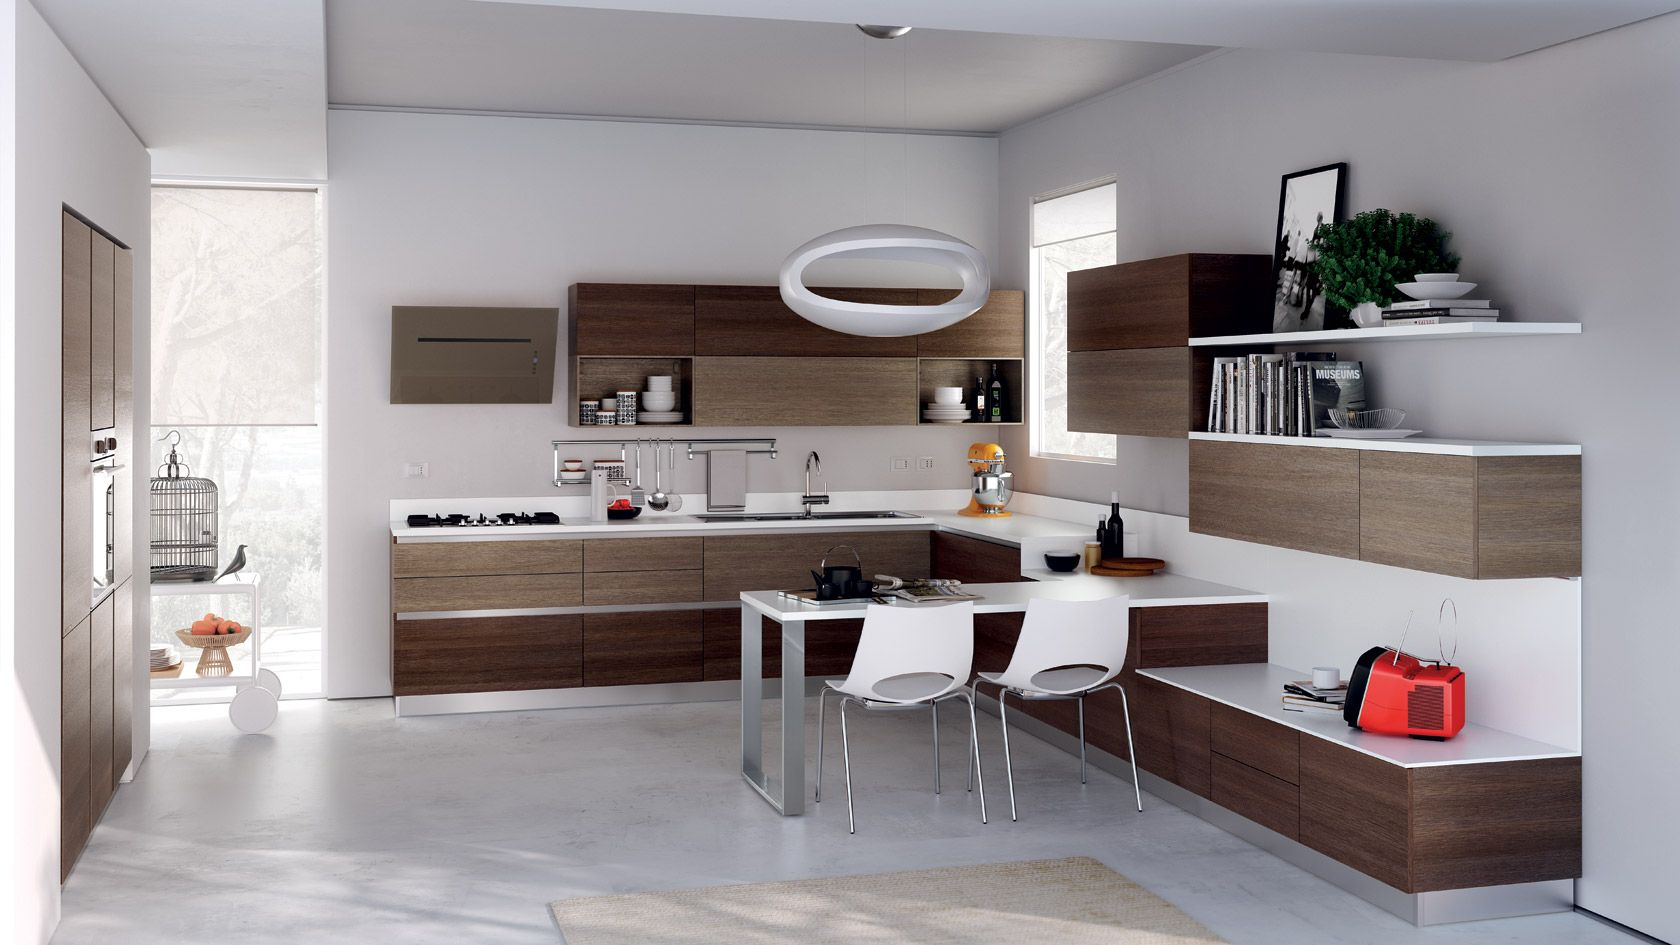 theslideshow - online slideshows from image search results ... - Cucina Sax Scavolini